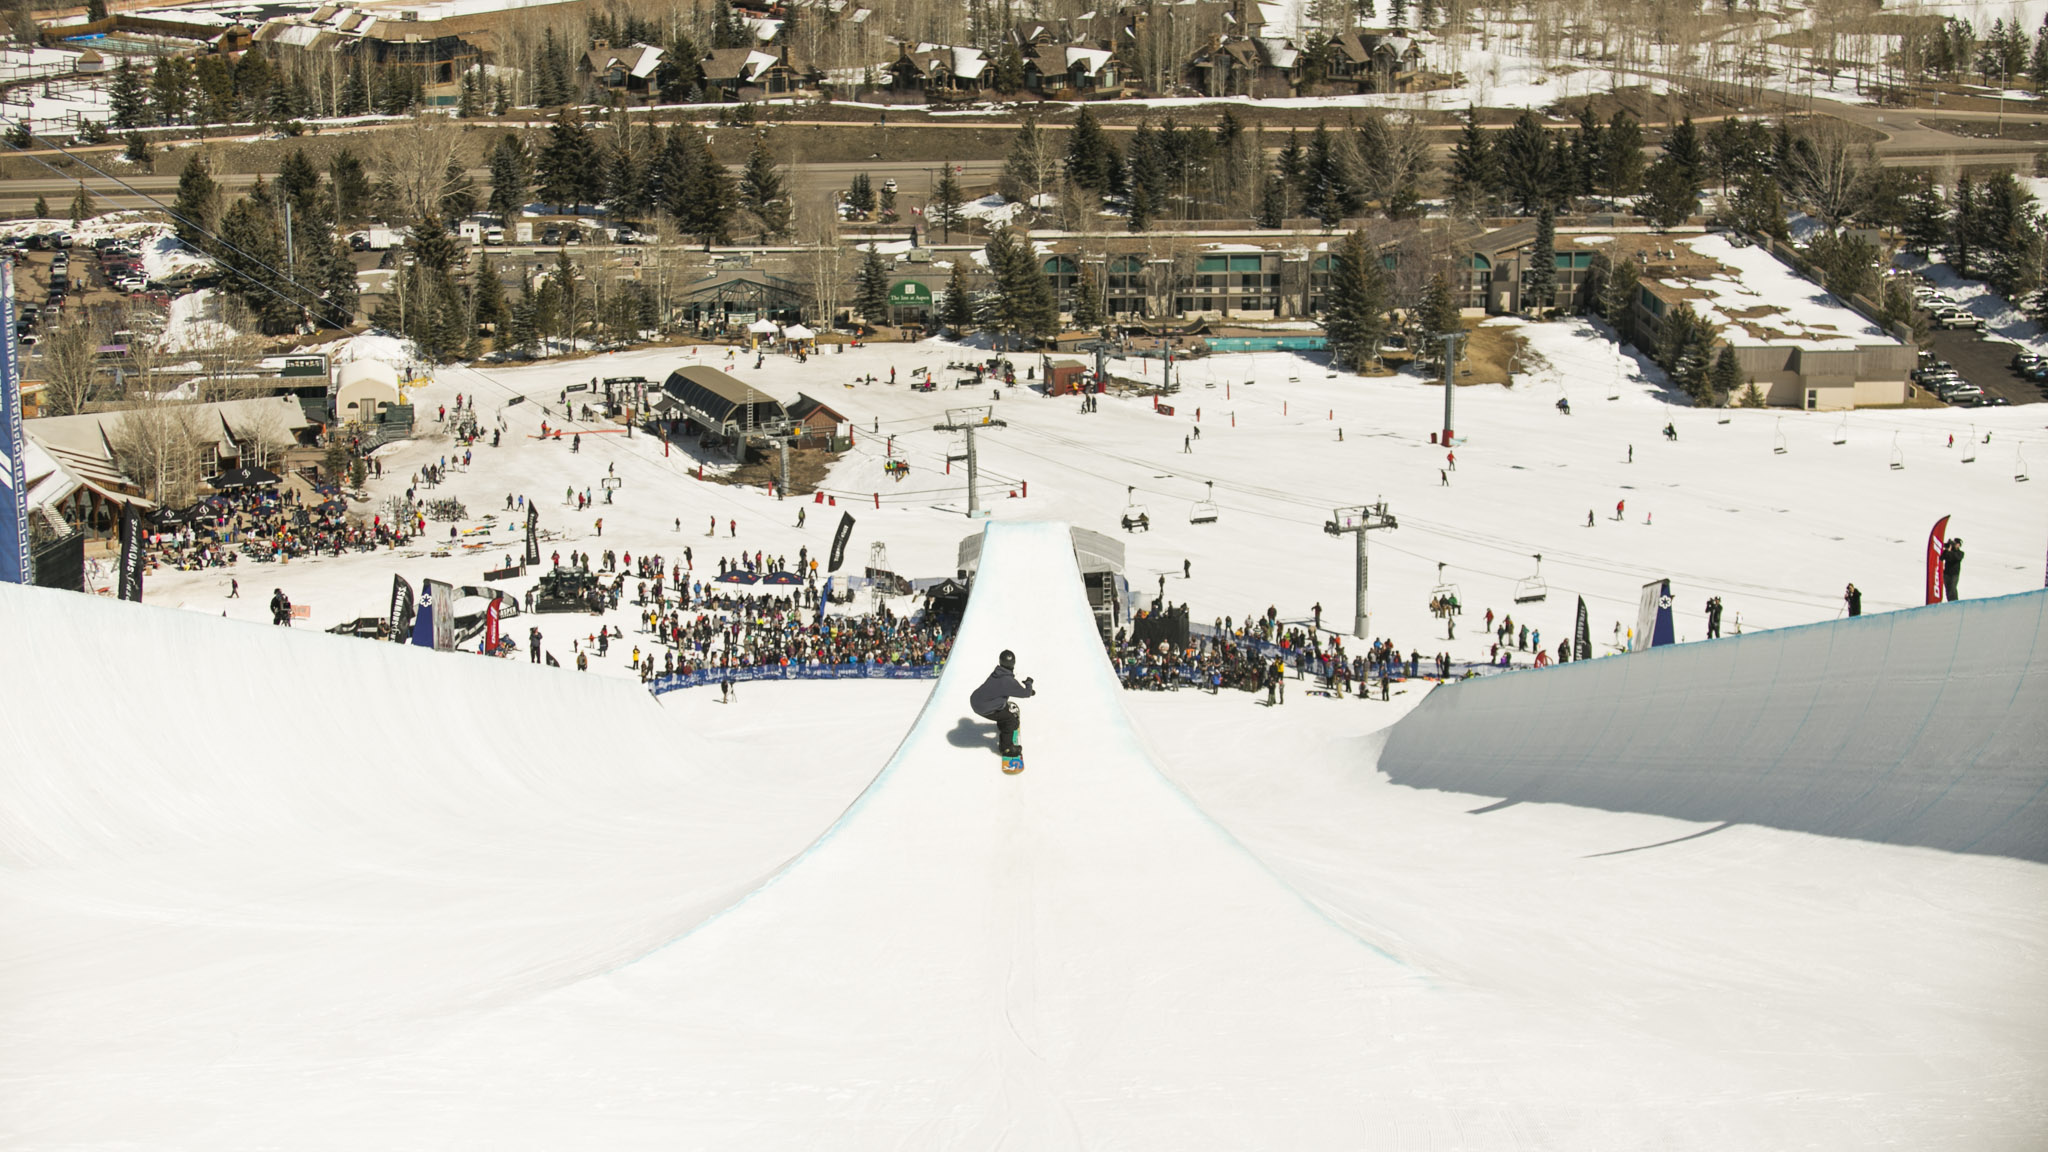 Behold the Red Bull Double Pipe